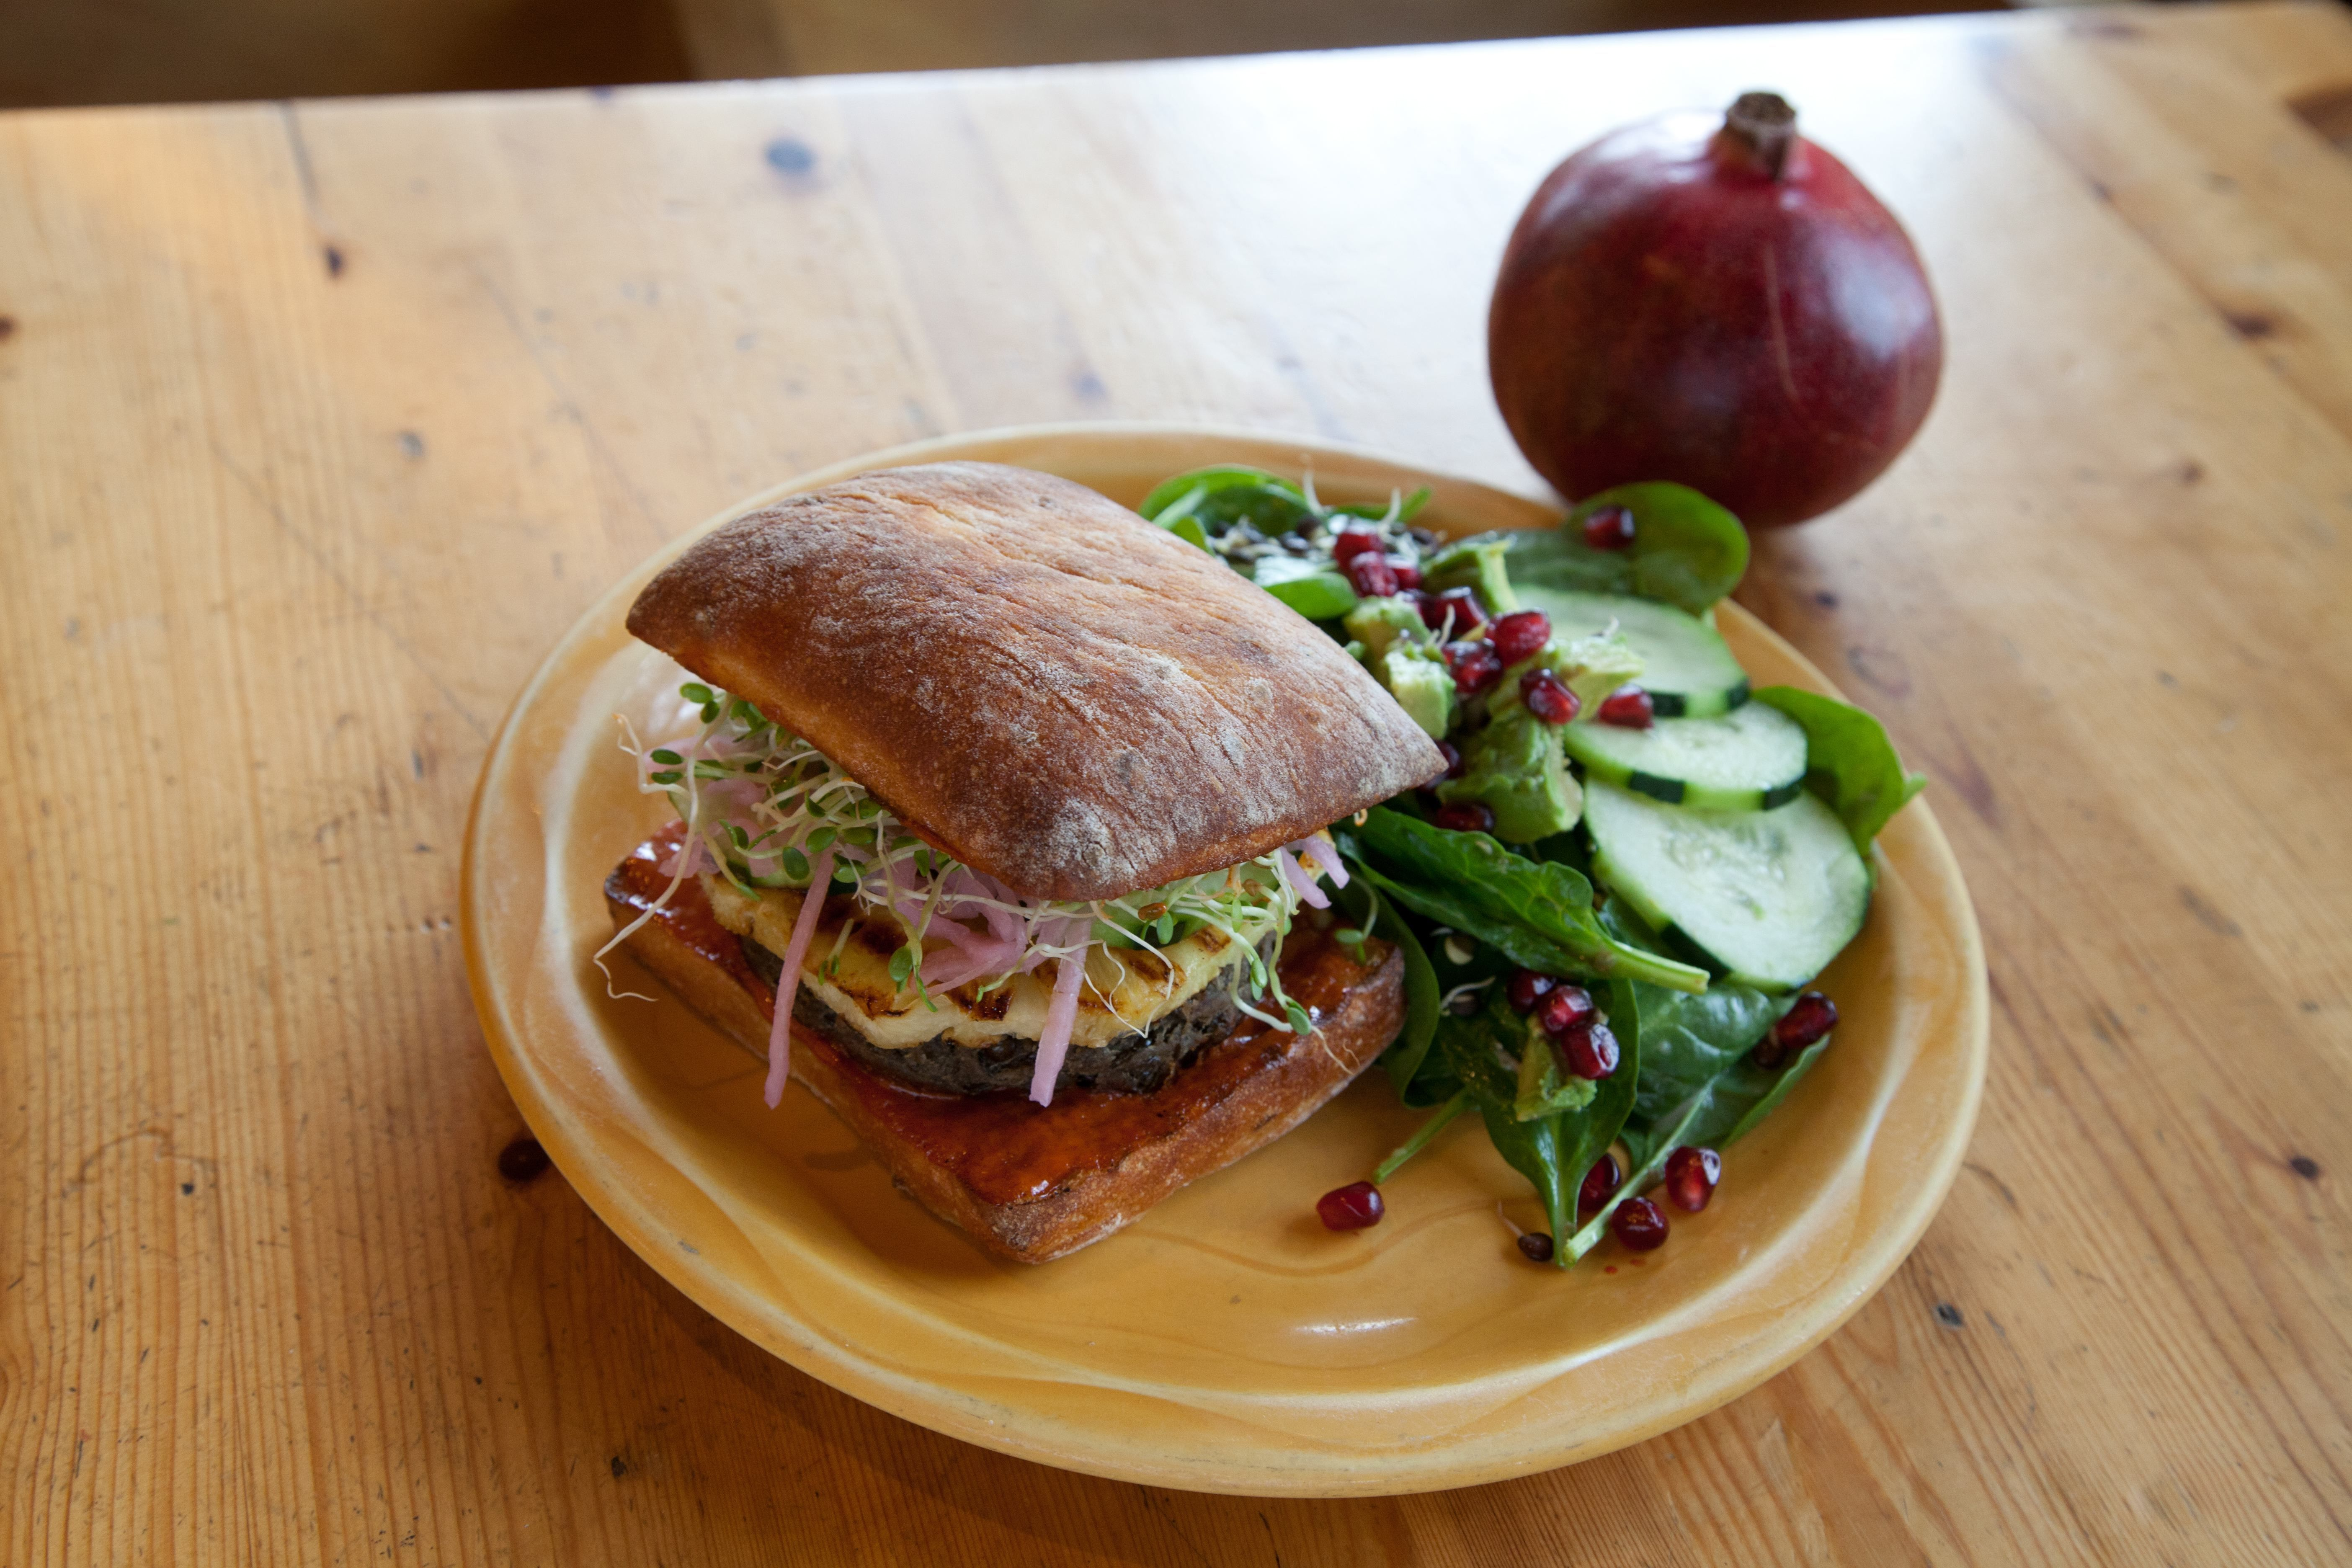 Chaco Canyon Cafe Vegan Restaurants Seattle Food Organic Restaurant